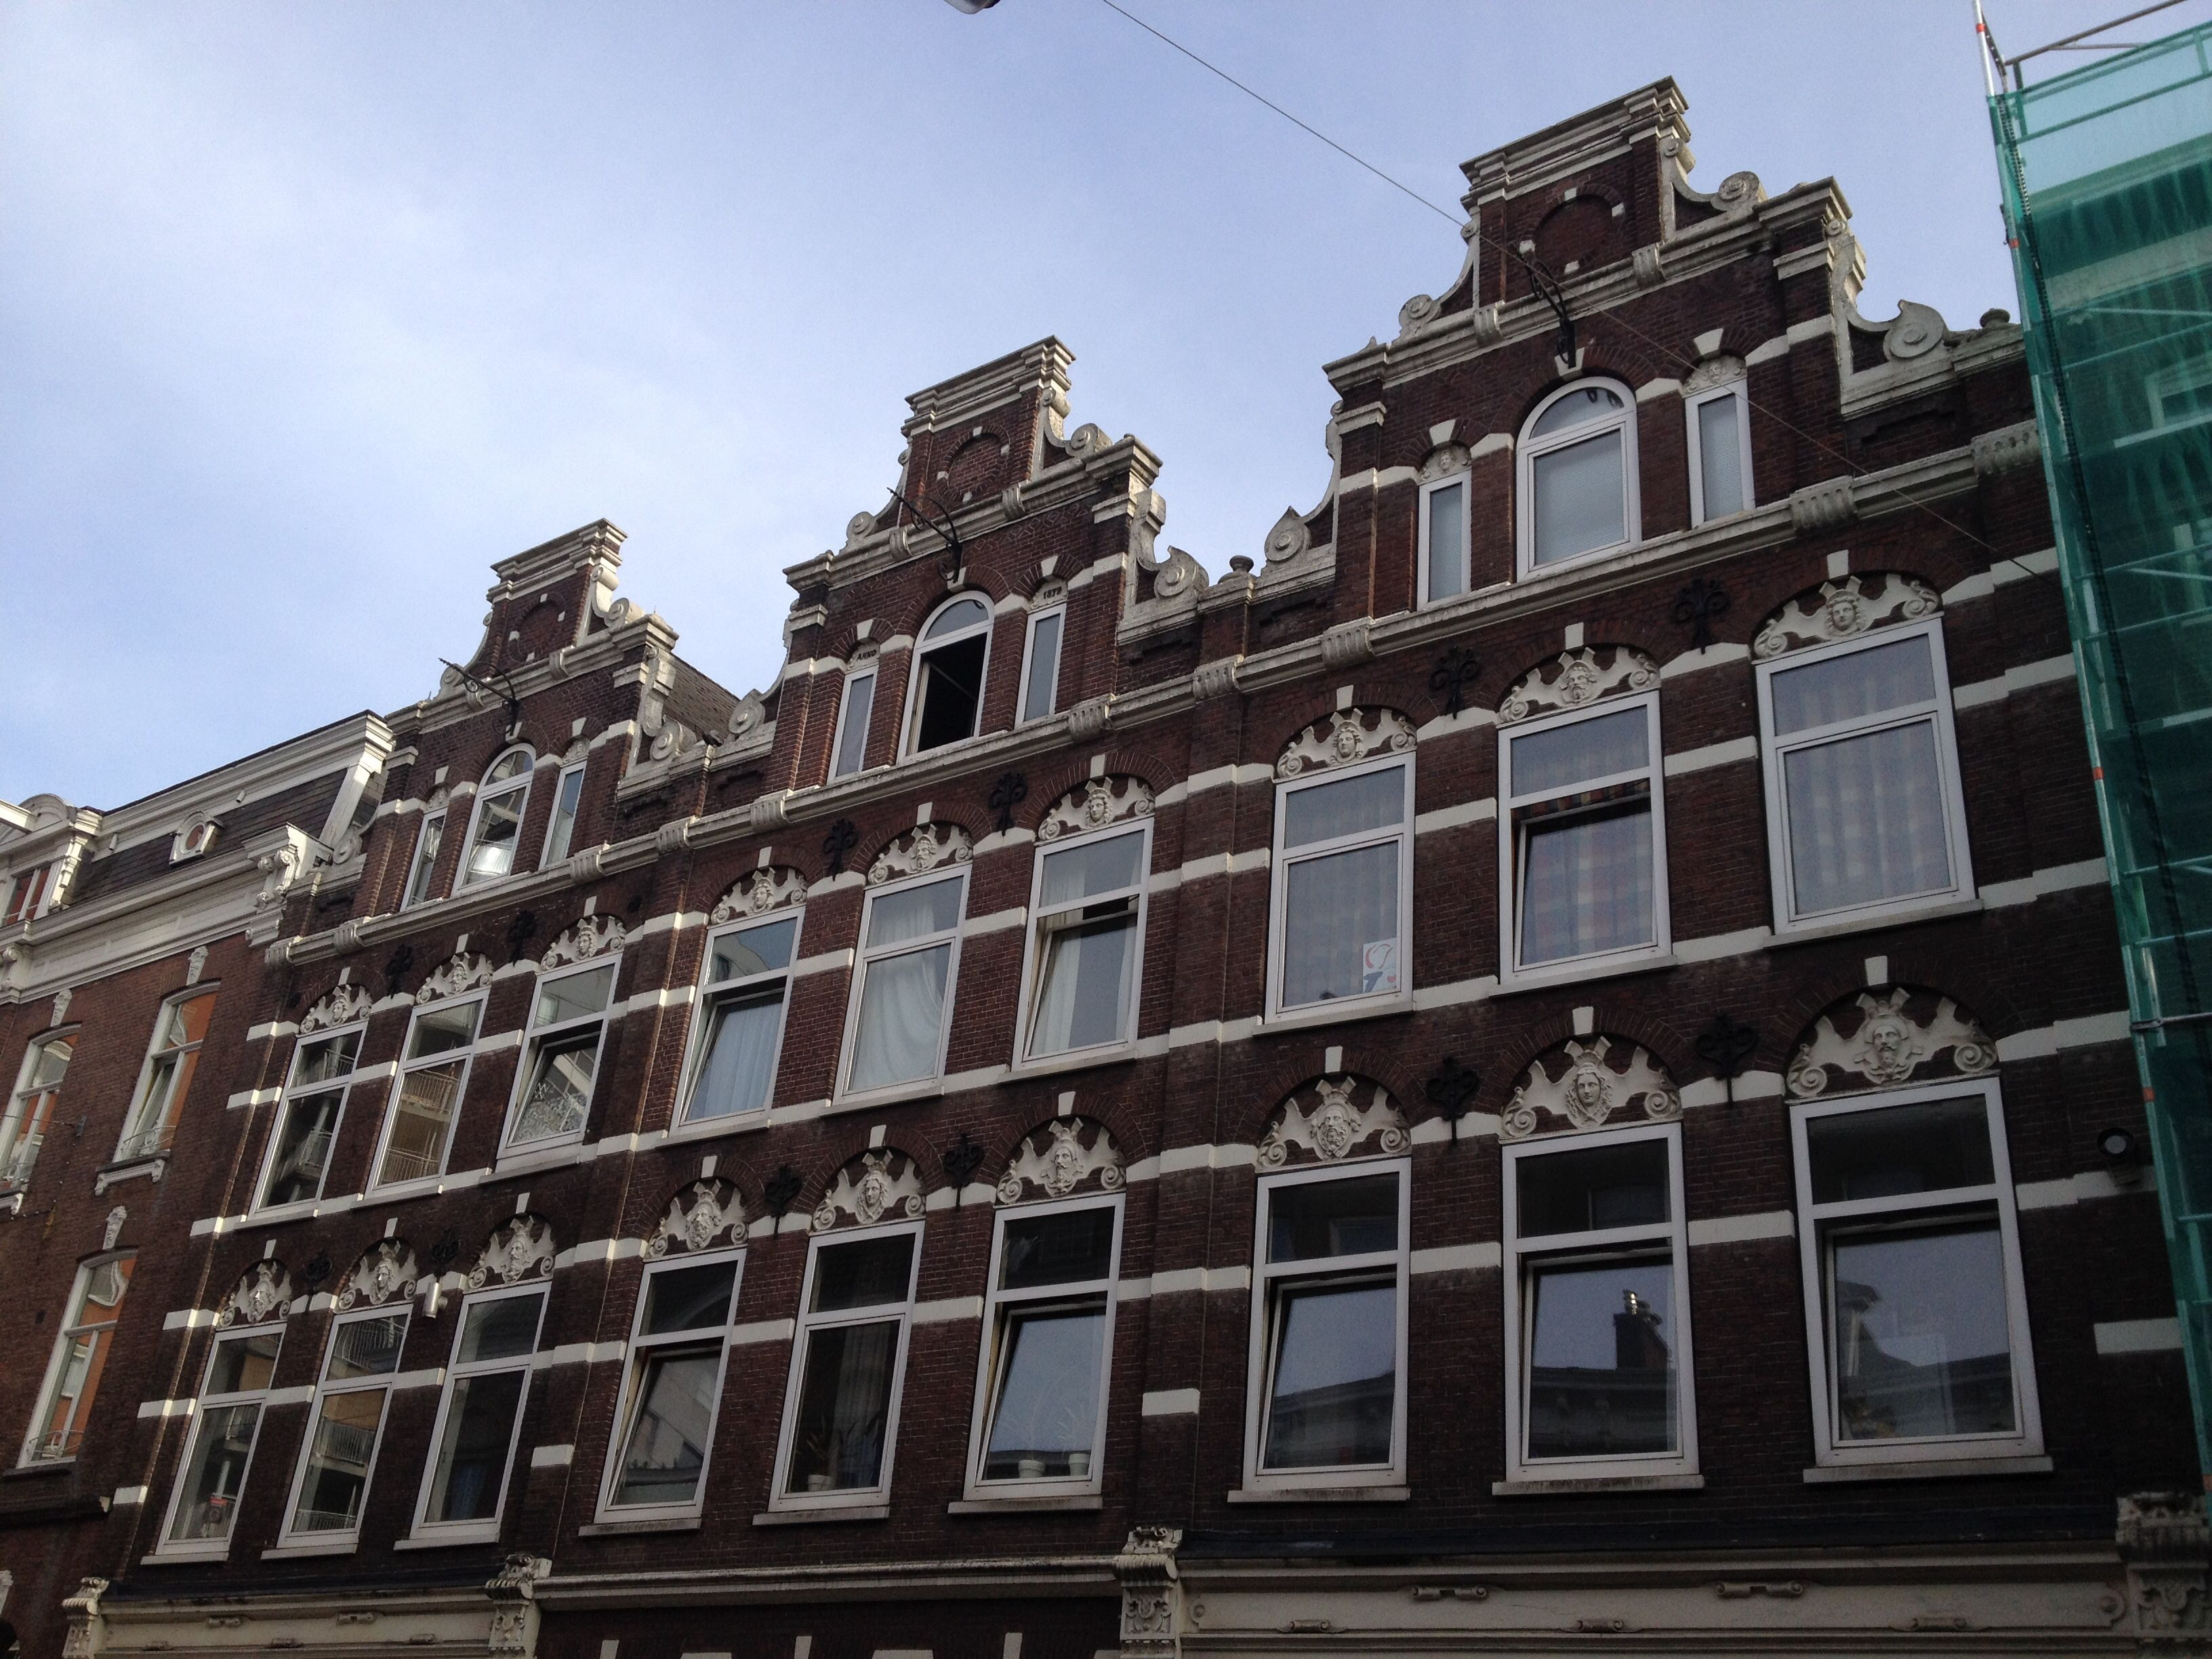 1000+ images about Inspiration from Amsterdam, architecture on ...